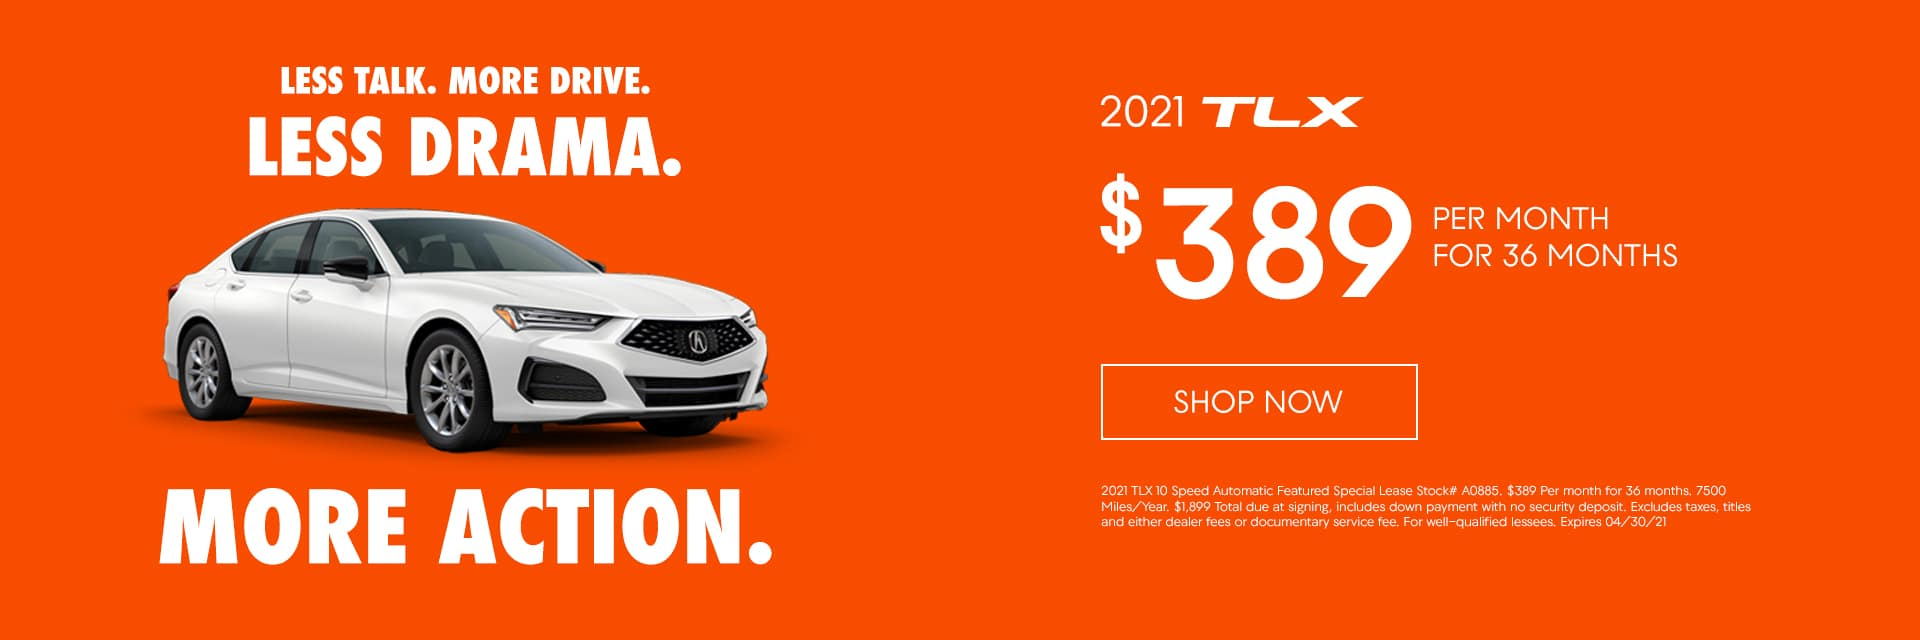 $389/mo. for 36 mo. 2021 TLX 10 Speed Automatic Featured Special Lease Stock# A0885 $389 Per month for 36 months. 7500 Miles/Year. $1,899 Total due at signing, includes down payment with no security deposit. Excludes taxes, titles and either dealer fees or documentary service fee. For well-qualified lessees. Expires 04/30/21